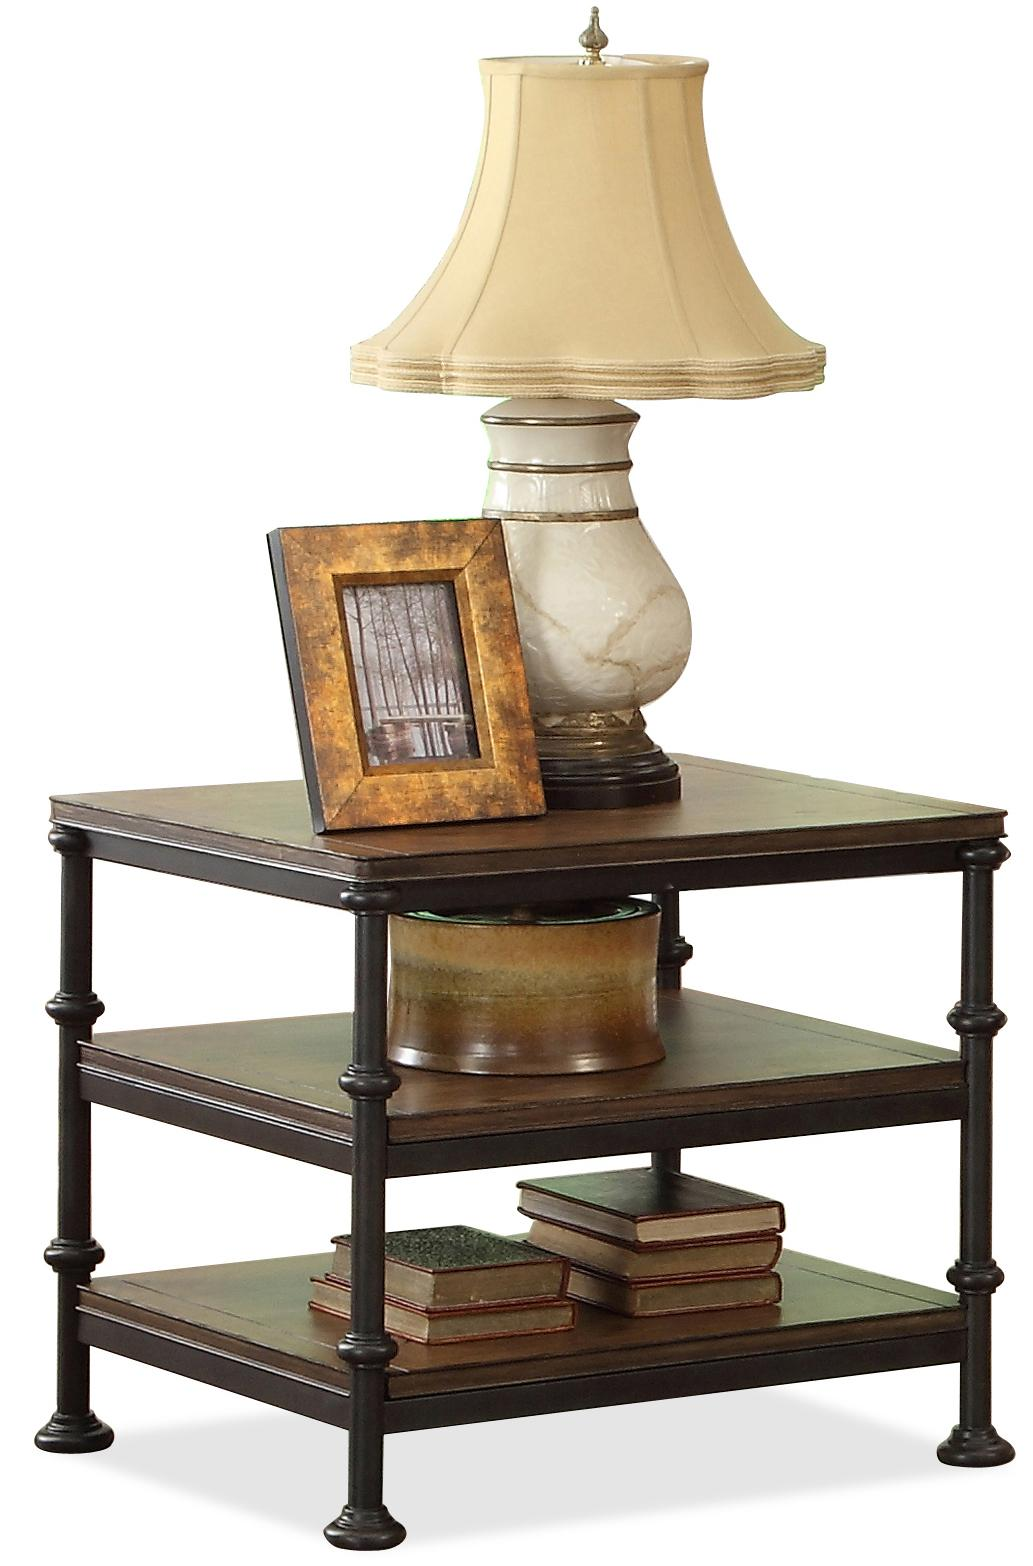 Beau Rectangular End Table With 2 Shelves